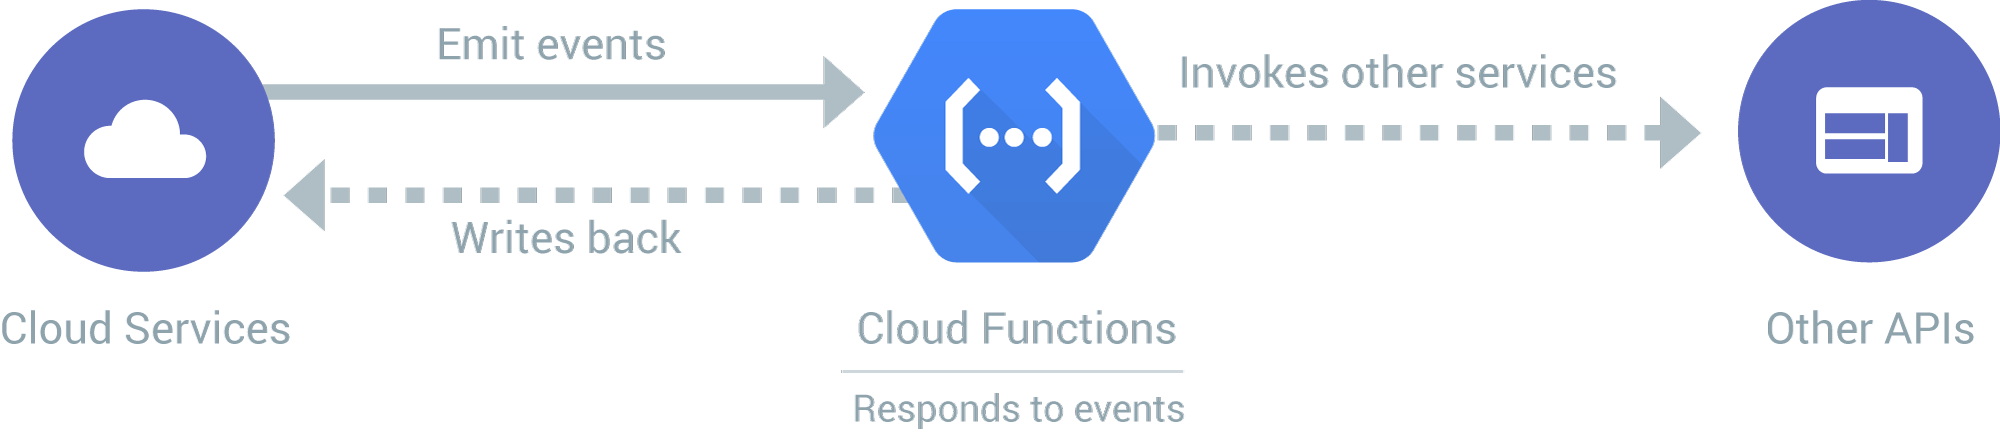 Reference: https://cloud.google.com/images/products/functions/how-it-works.svg